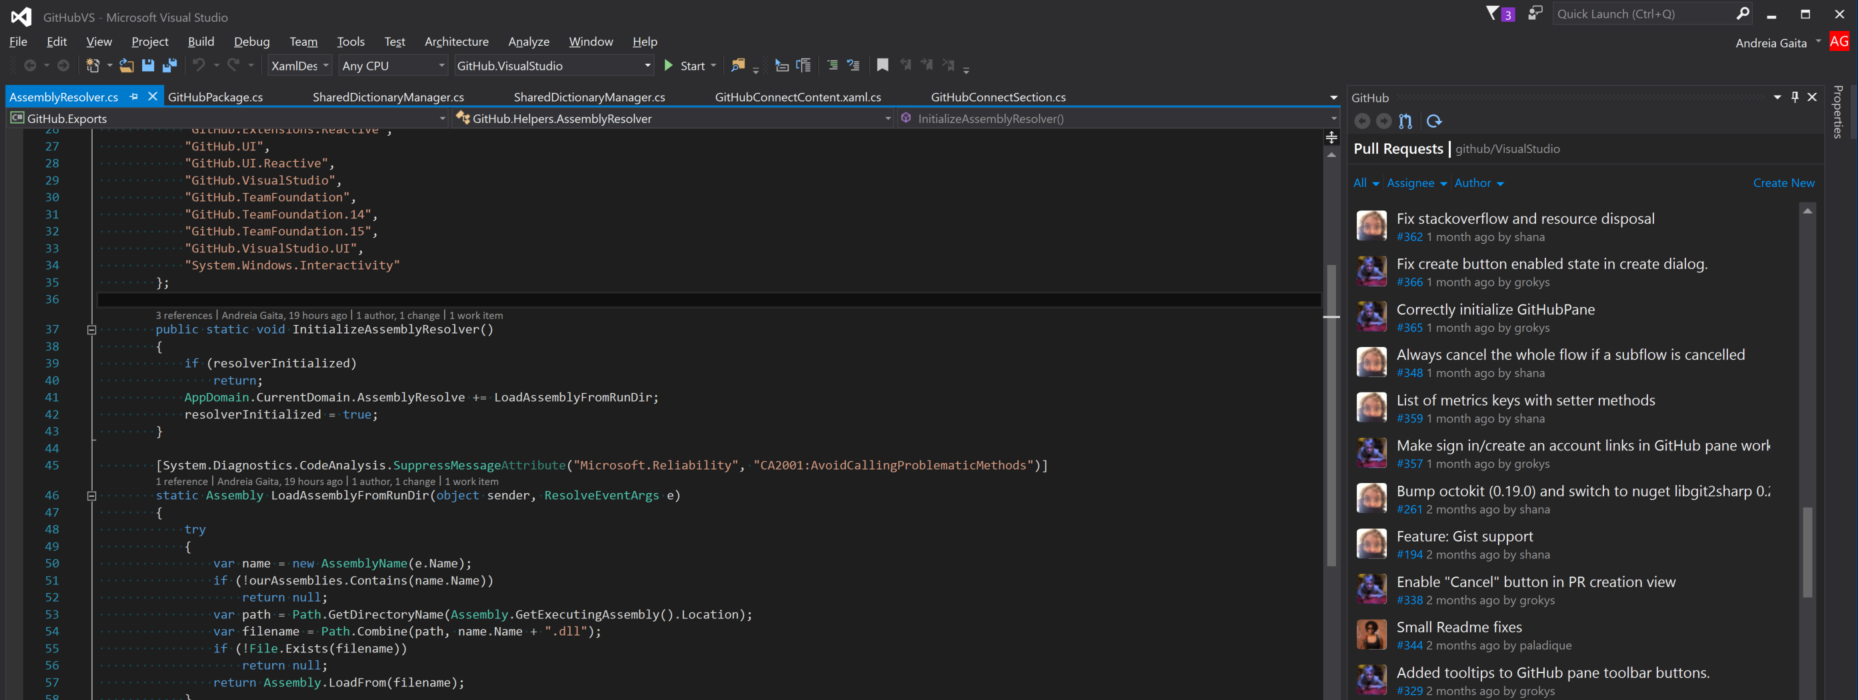 Screenshot of Visual Studio with GitHub pane open